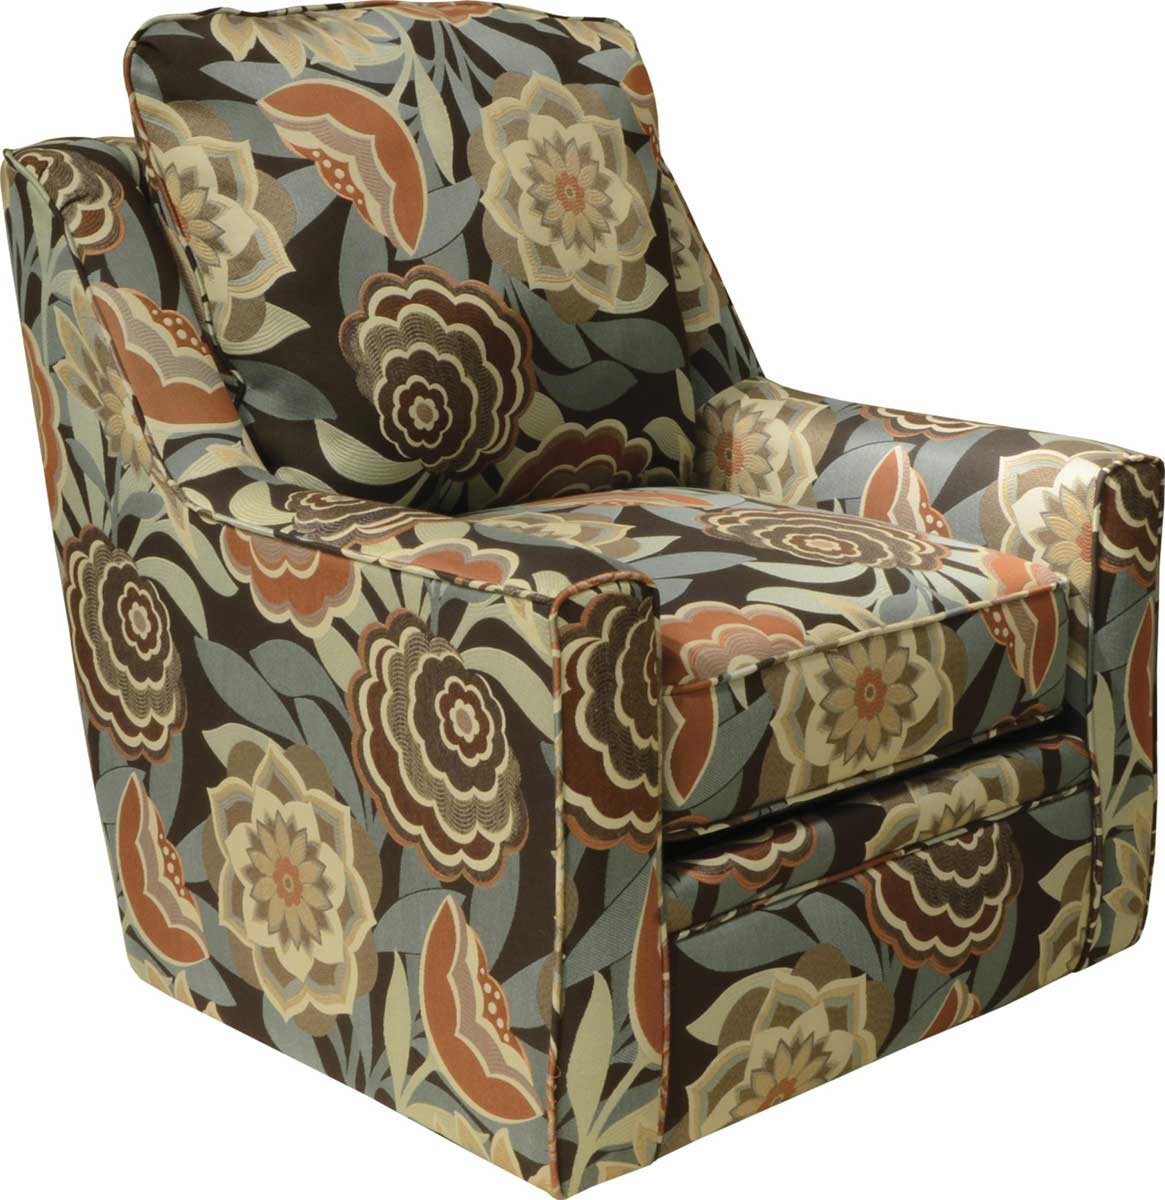 Jackson Sutton Swivel Chair - Correlate Spice